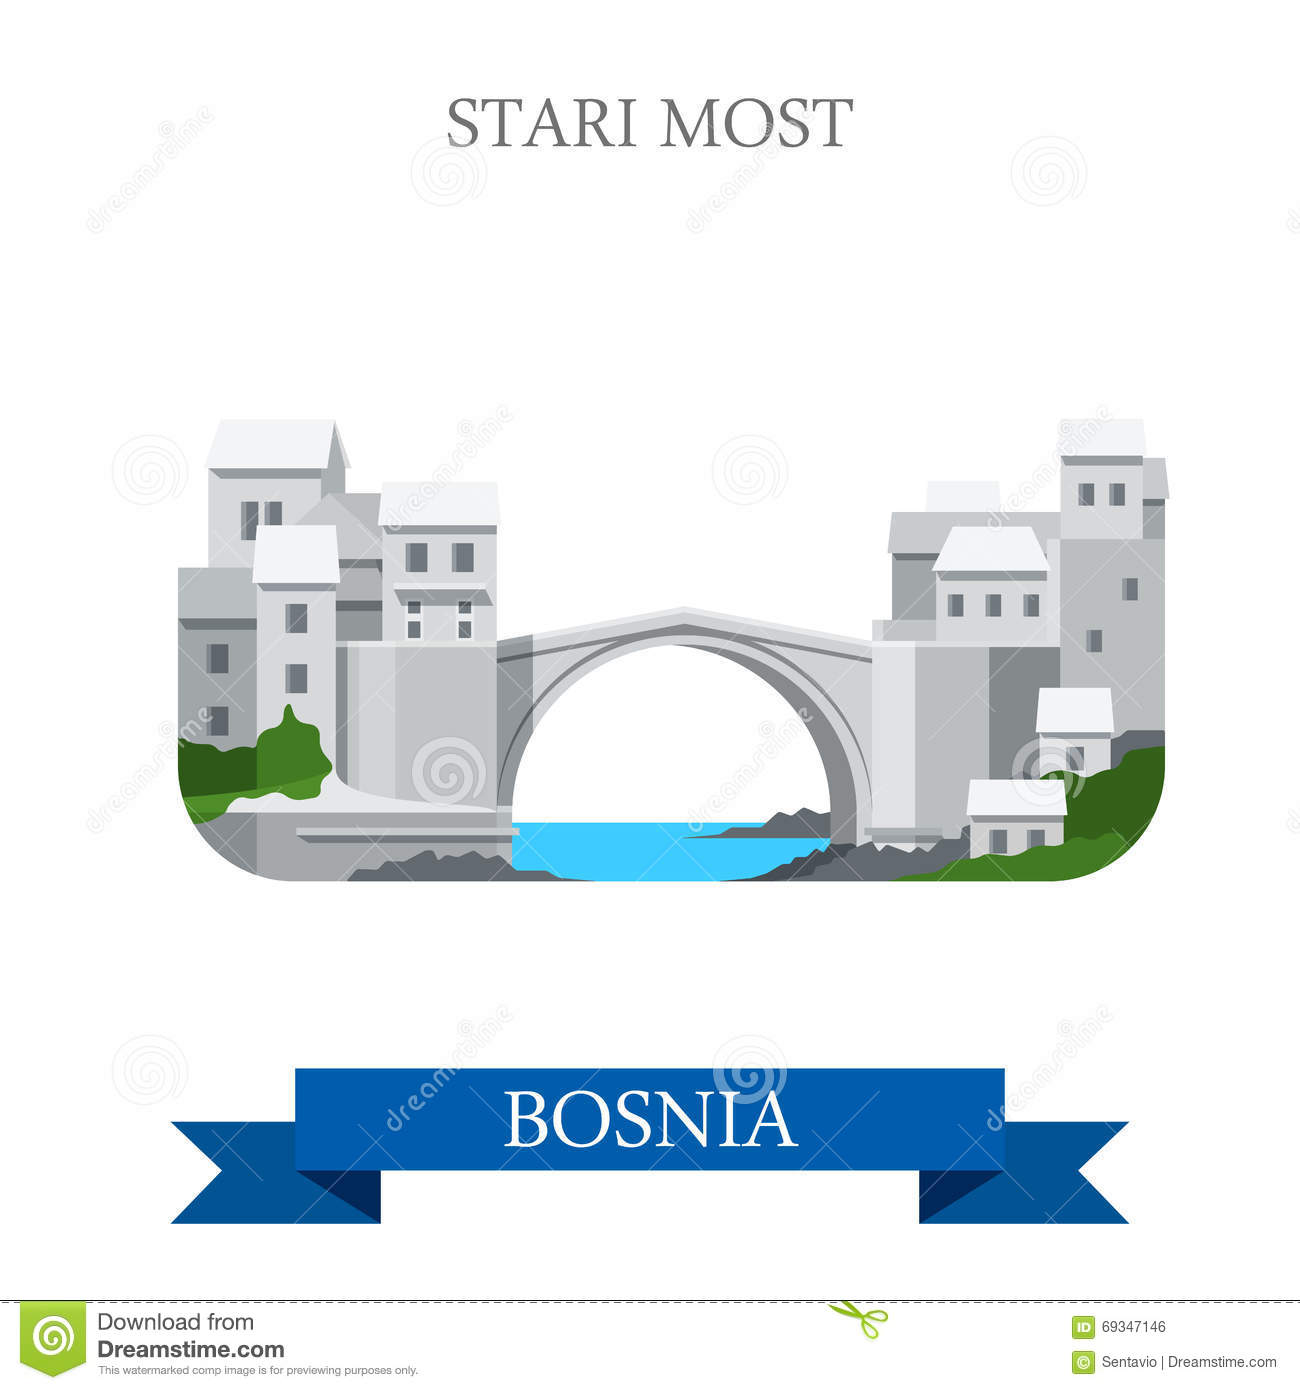 Bosnia clipart #11, Download drawings